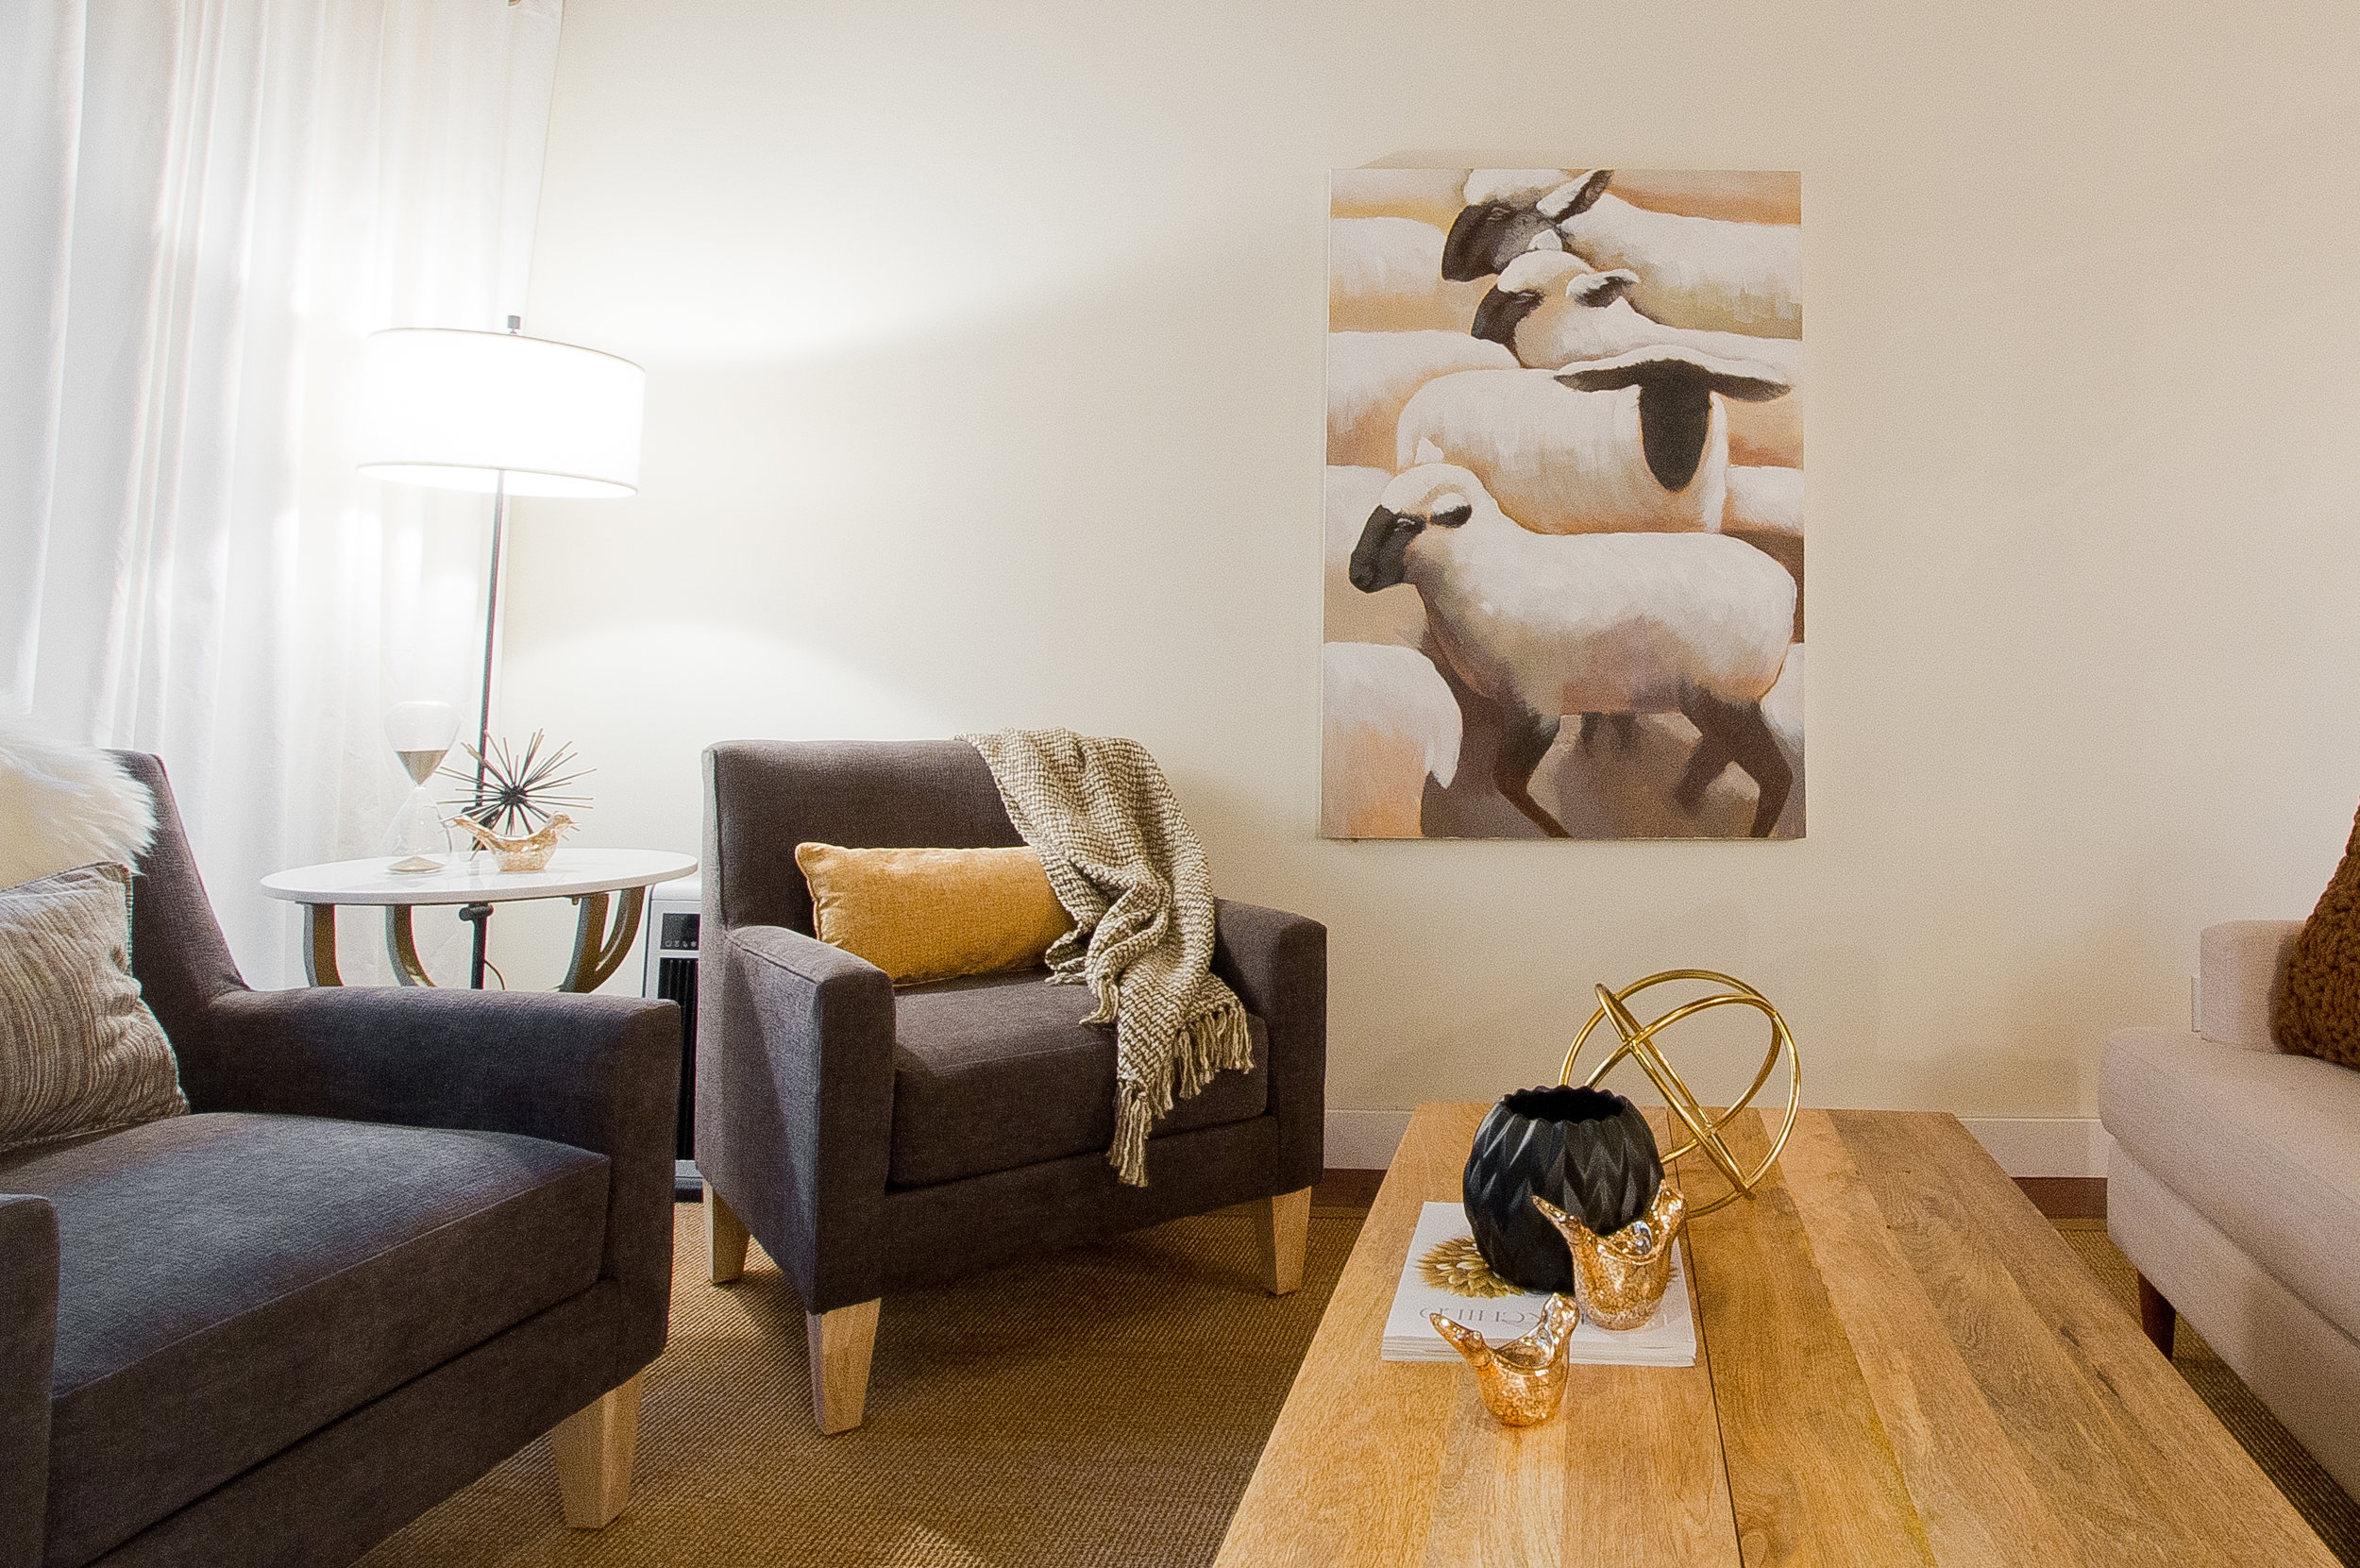 Elaine was professional, supportive, fun and flexible along the way and worked to our timeline. Elaine has a knack for identifying a client's taste and style and incorporating that into the design. She has a great sense of colour/style and helped us create a truly amazing space. We both enjoyed our time working with her. The end result is a masterpiece that we will enjoy for many years to come. I would highly recommend Elaine for any large or small project. She is a gifted designer and has now become a friend. We will be calling her again for future projects.    — Jennifer & Ronan Deane